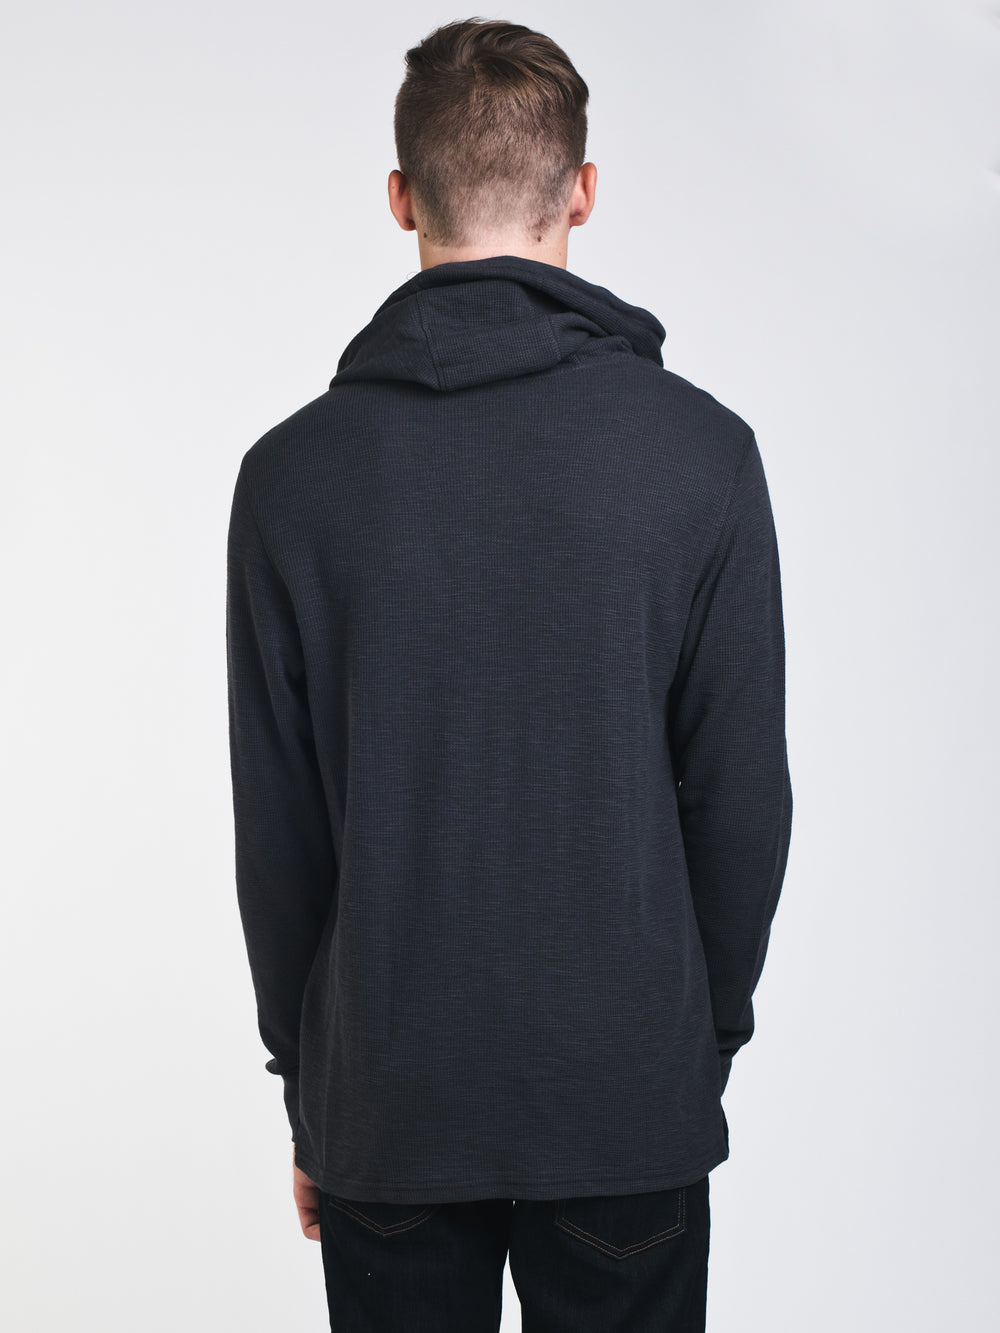 MENS MURPHY THERMAL LONG SLEEVE - GRY/BLK - CLEARANCE